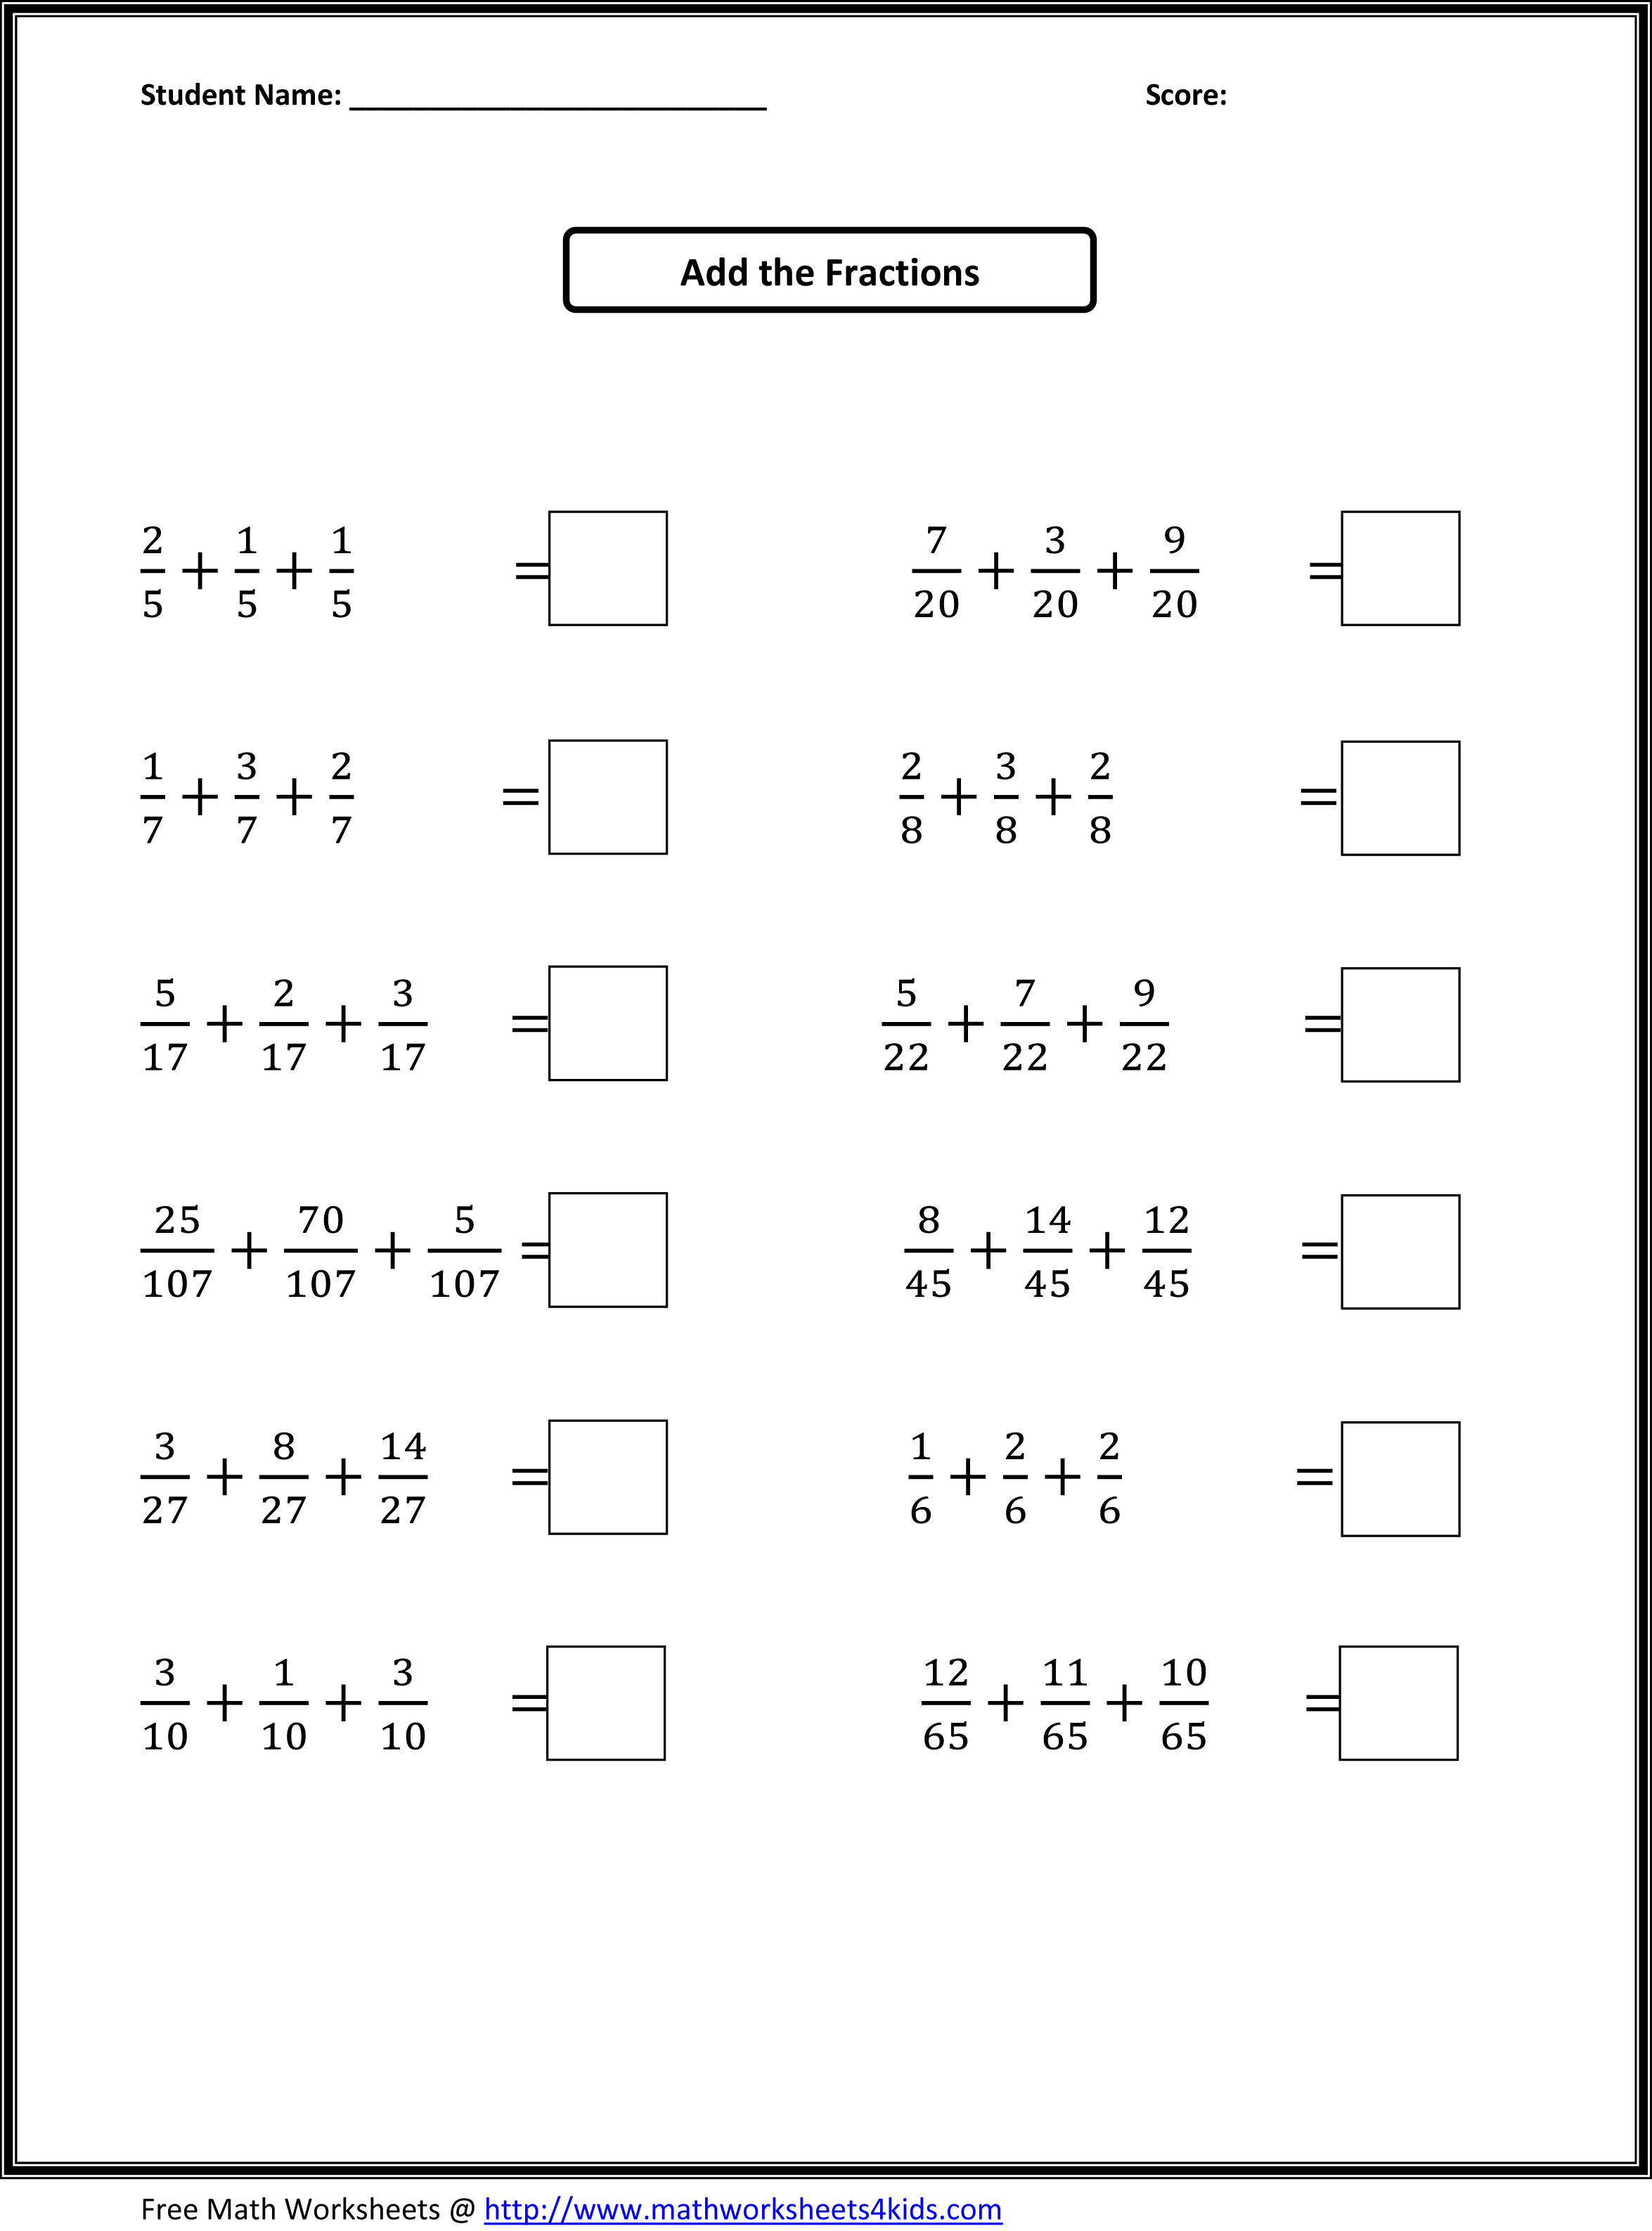 Worksheets 4th Grade Addition Worksheets fraction worksheets 4th grade kids activities converting improper fractions mixed numbers writing printable free adding print